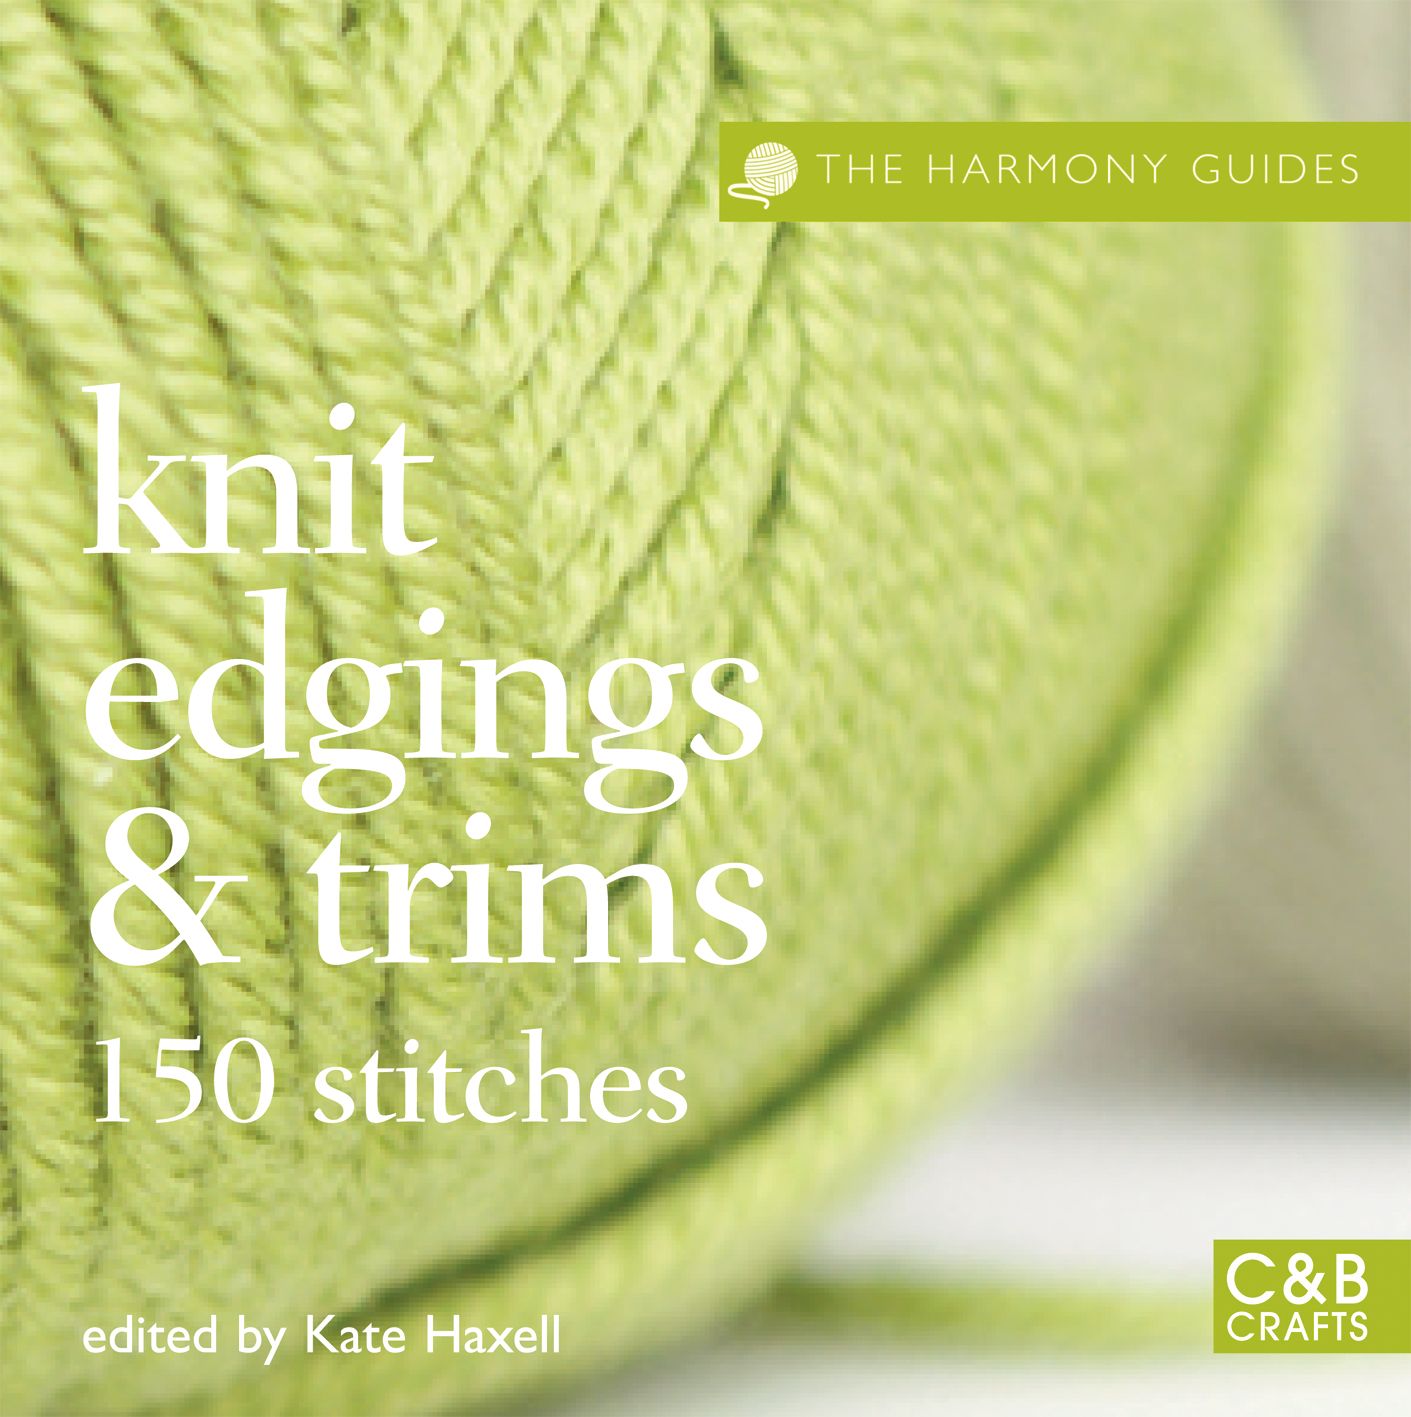 The Harmony Guides: Knit Edgings & Trims